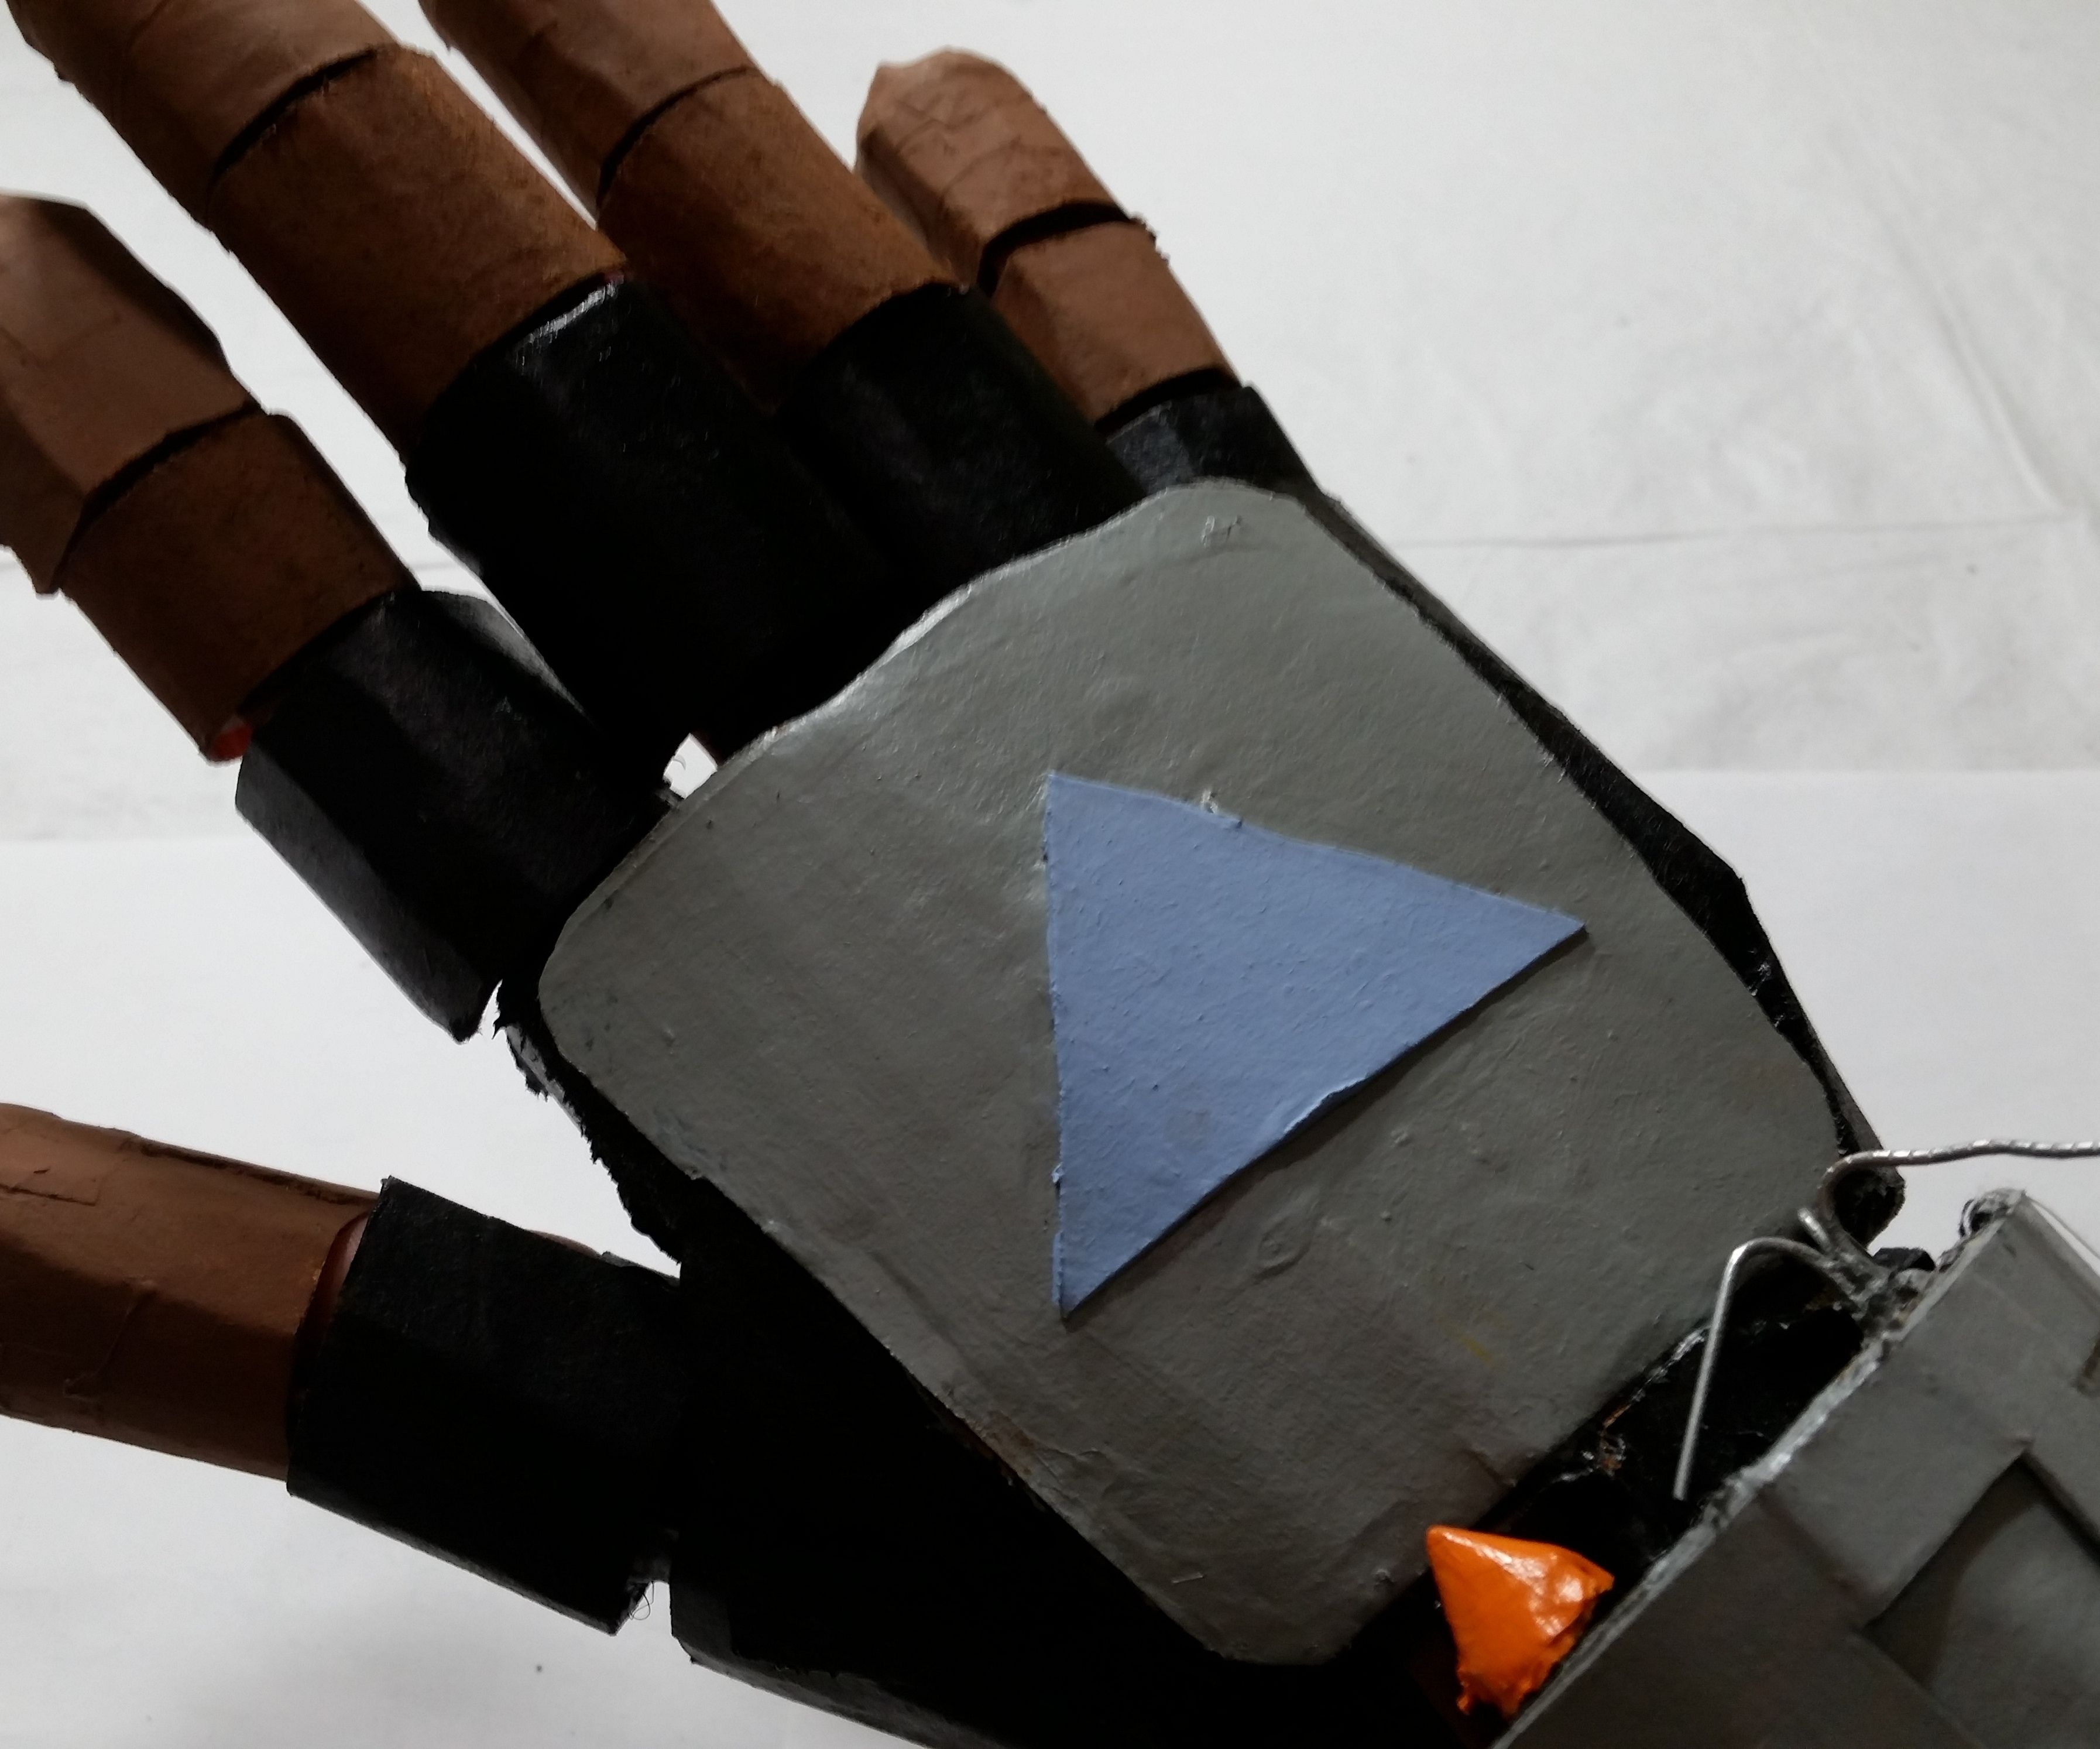 Working Cardboard Mandalorian Gauntlet How To Make It 14 Steps With Pictures Instructables